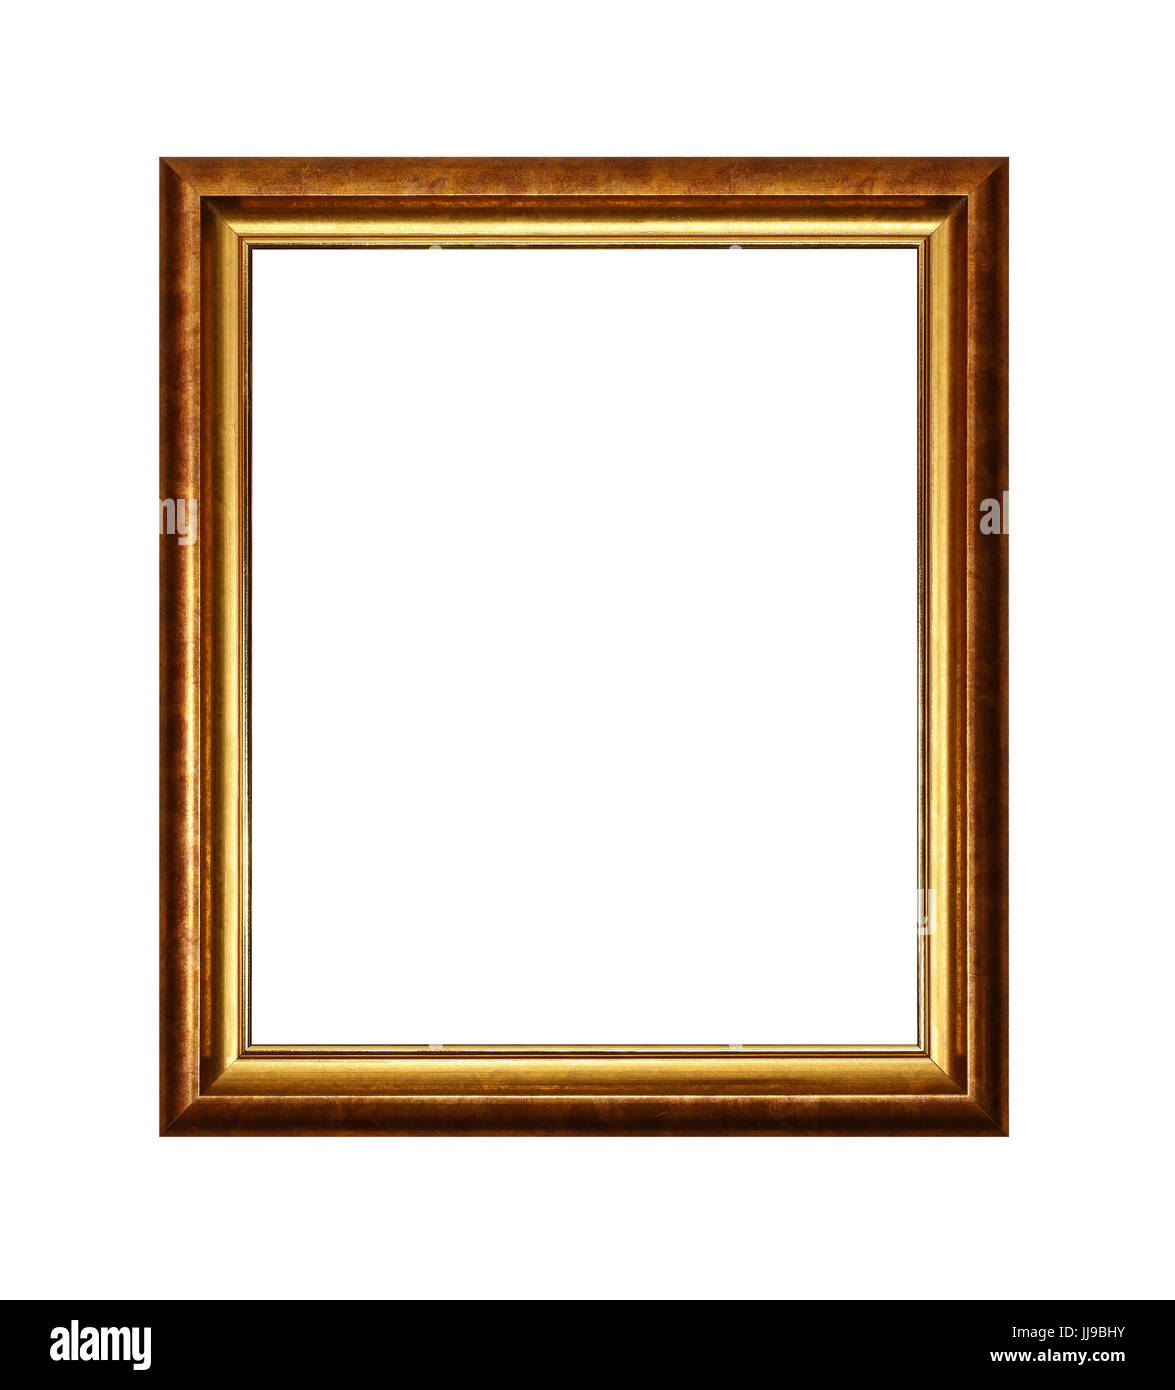 Picture Framing Close Up Stockfotos & Picture Framing Close Up ...